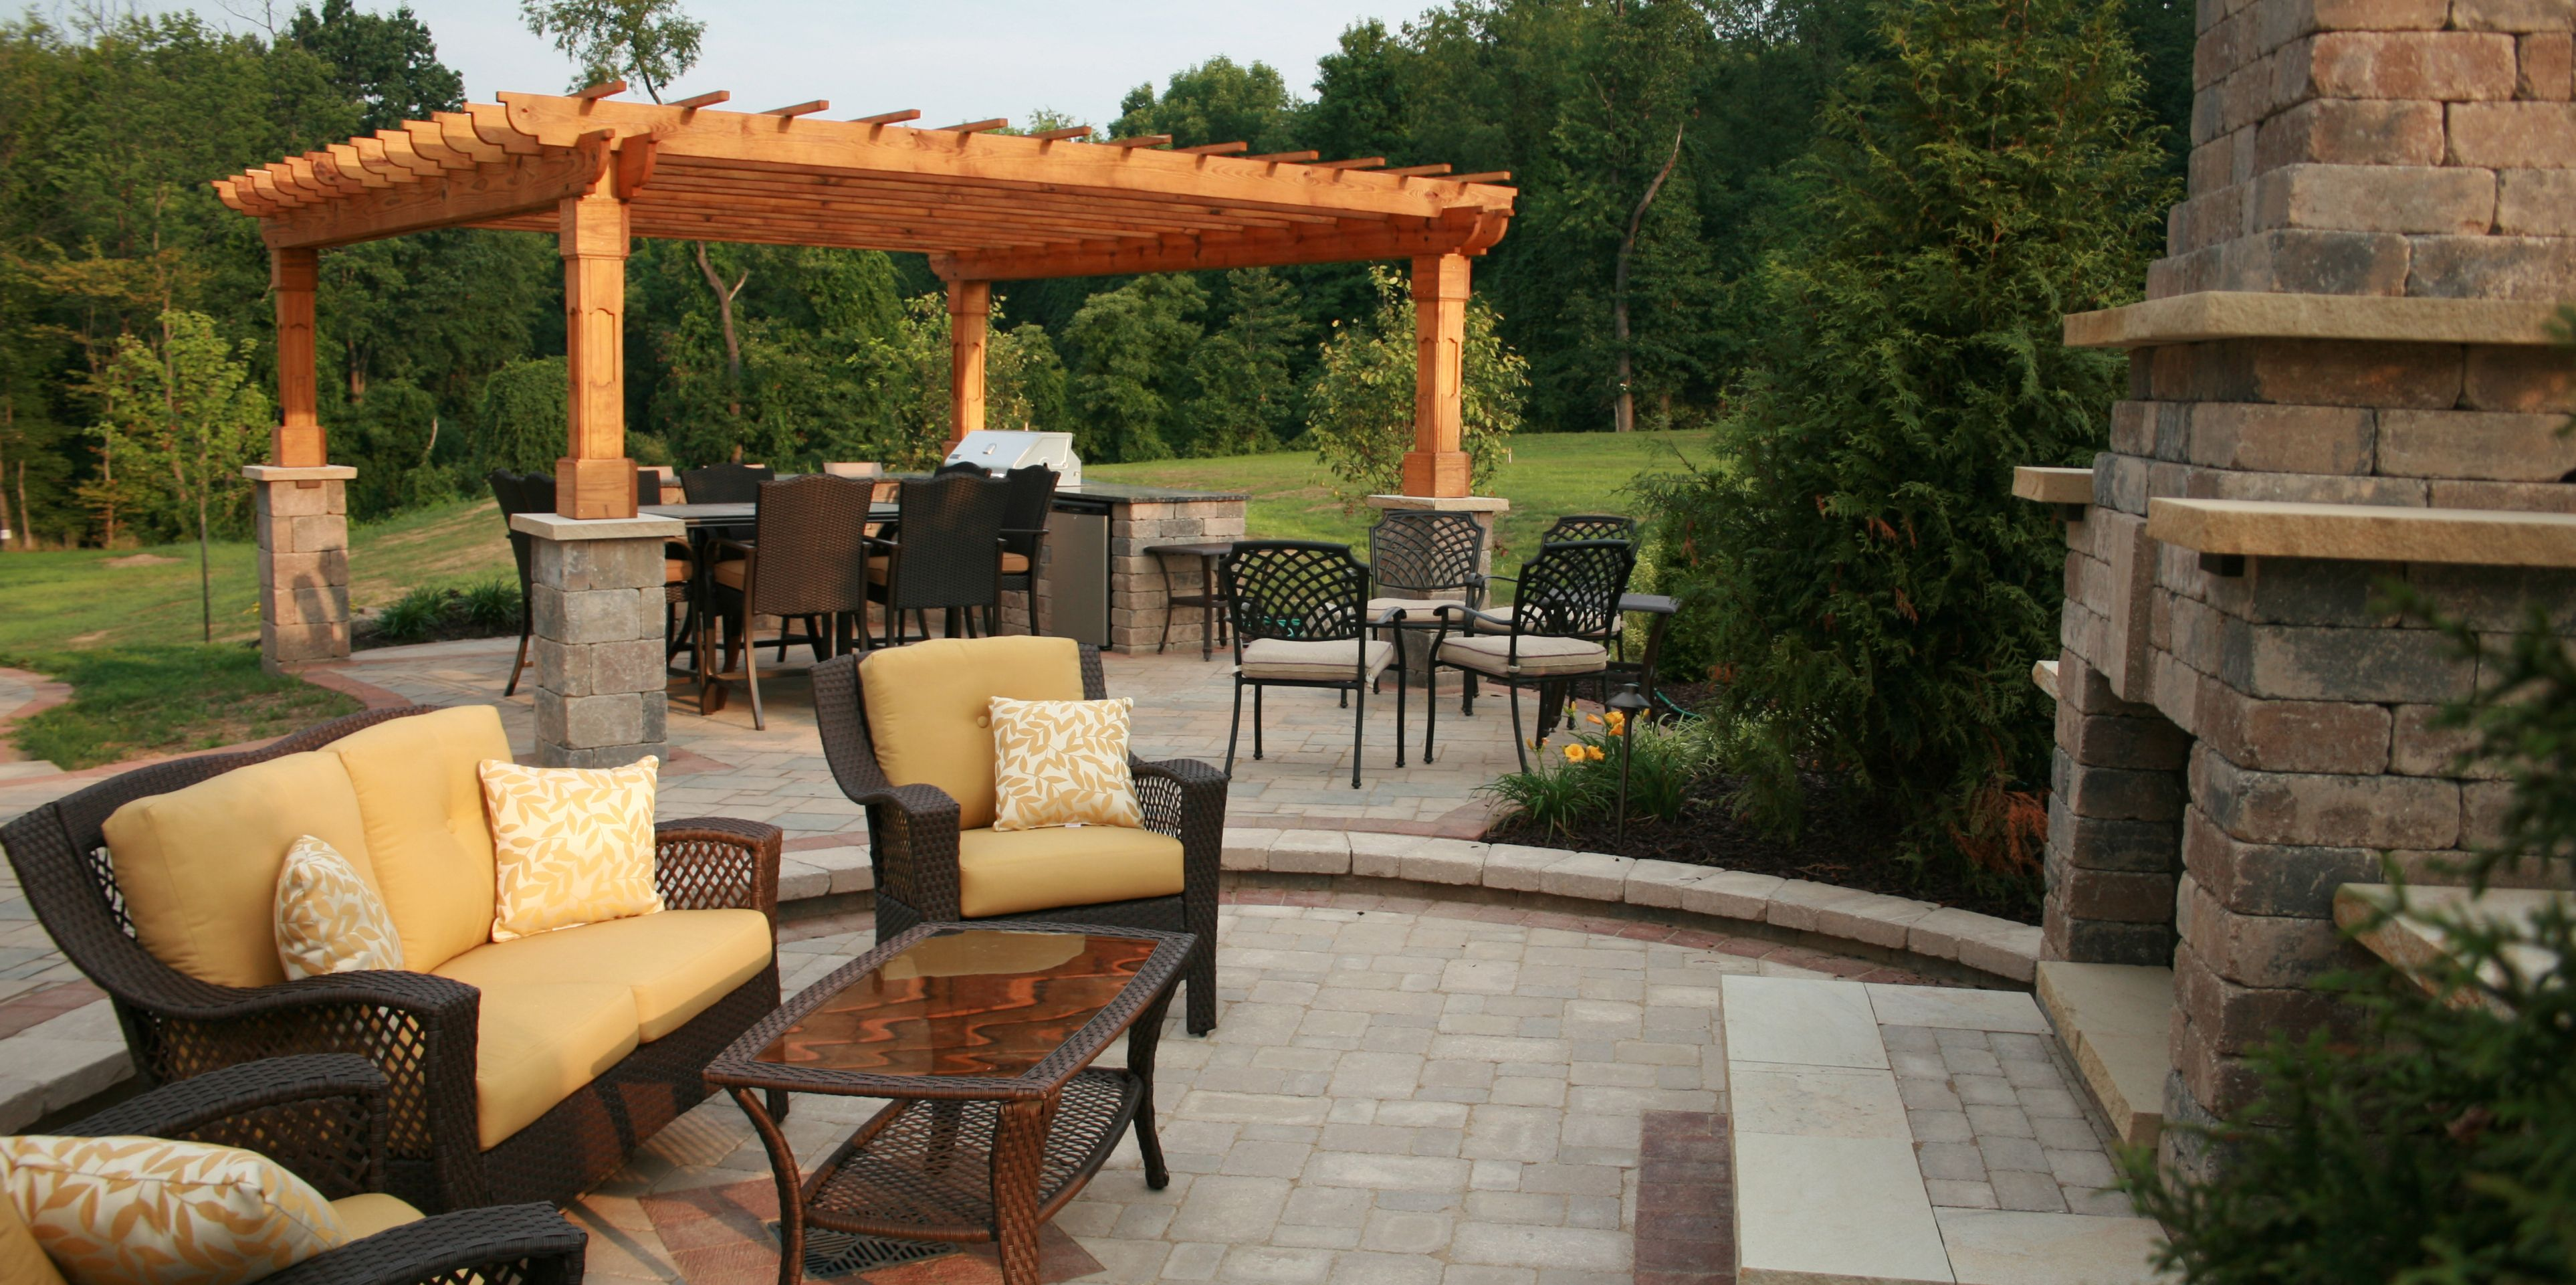 Berlin Gardens Wood Outback Pergola, Customized To Fit With Pillars. Paver  Patio With Fireplace